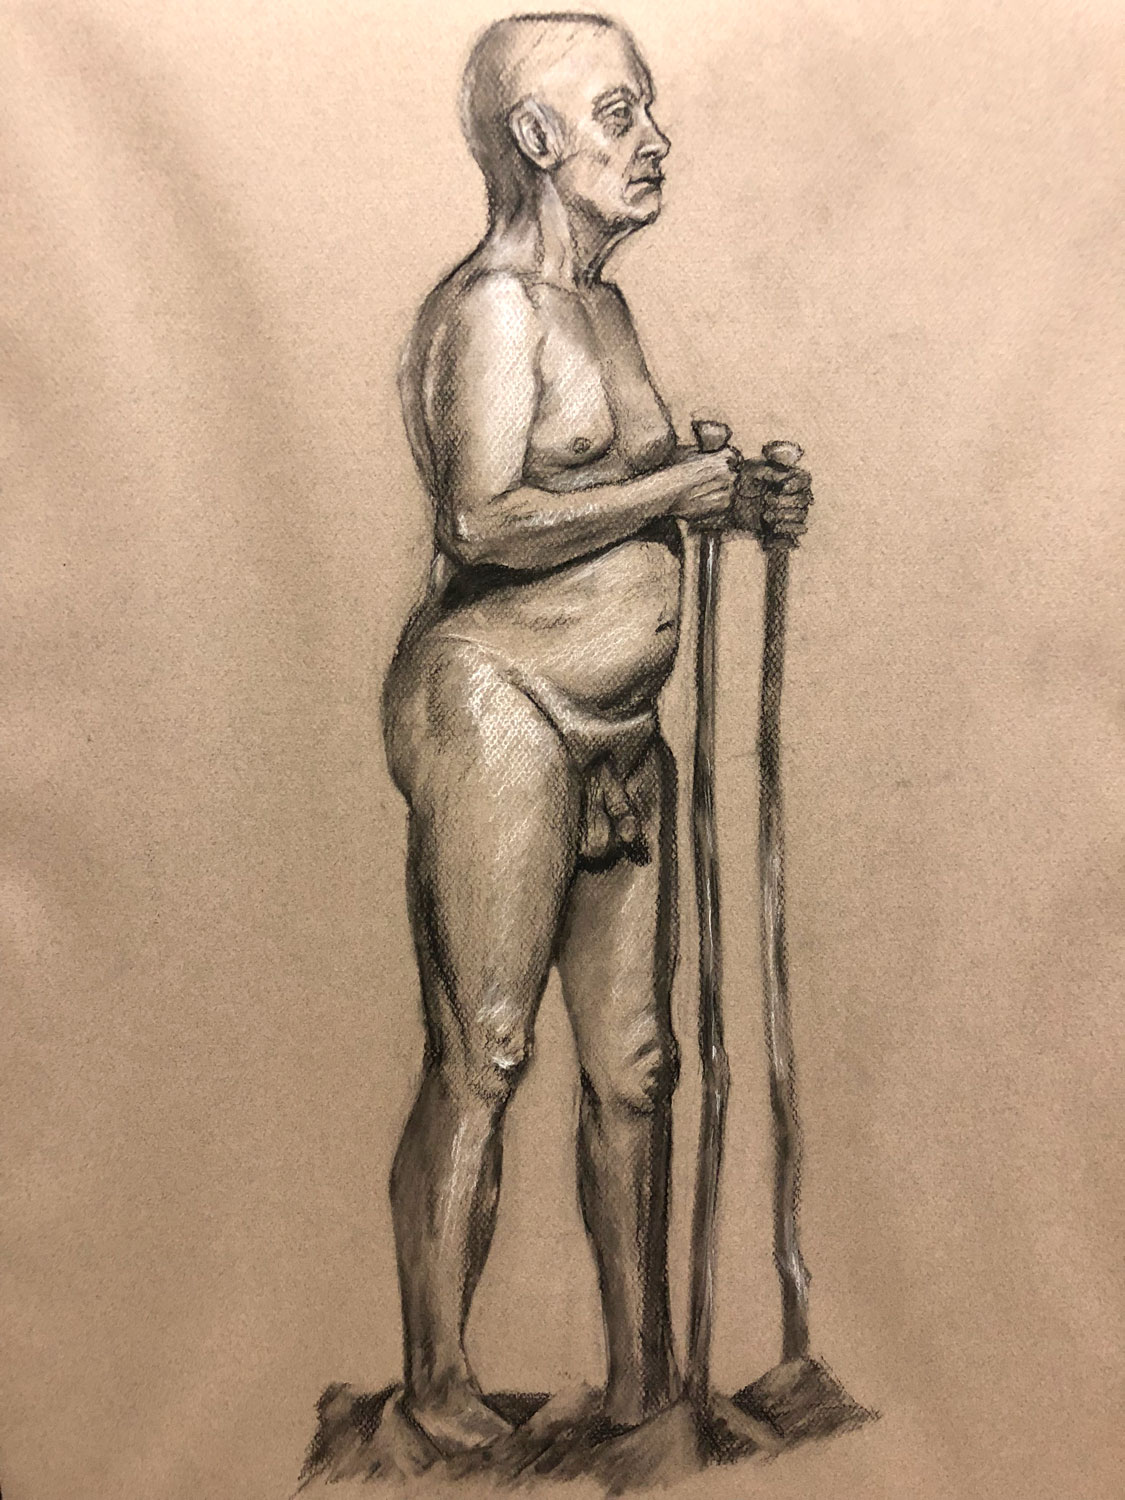 UW-Whitewater •10/25/17 • Full figure in charcoal